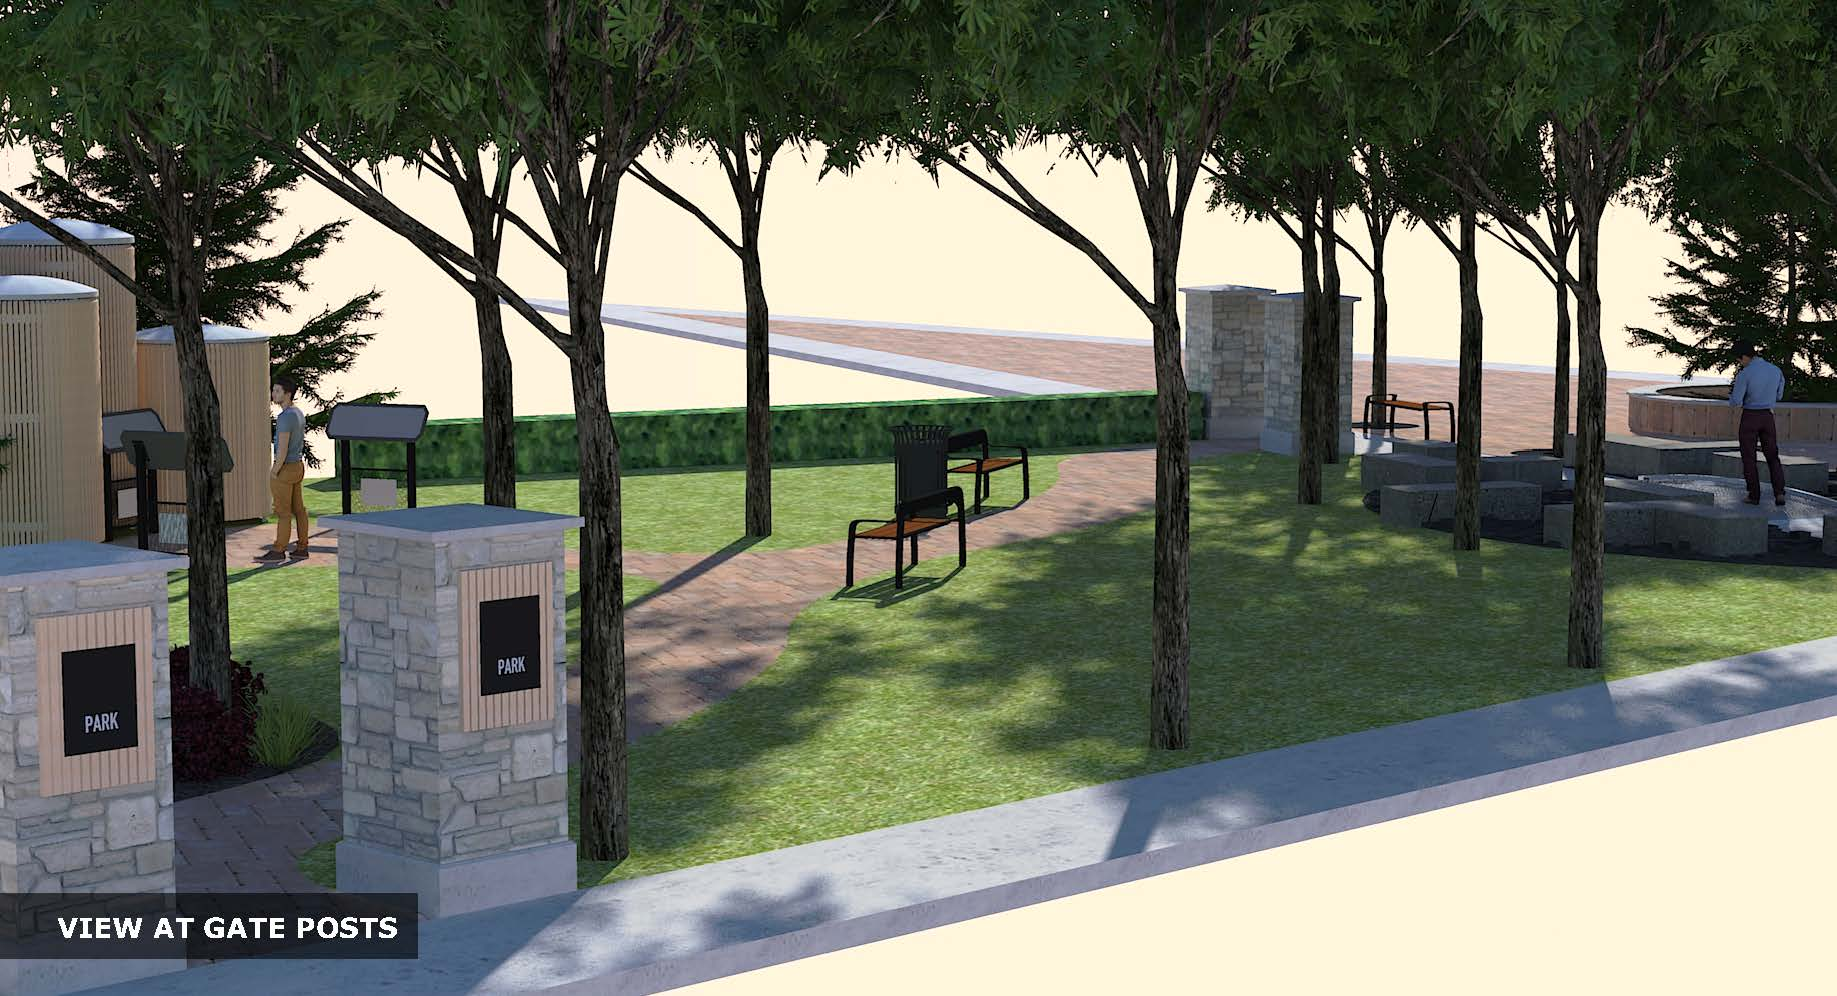 Gate Post_Park Concept Design_Riverview Design Solutions_Landscape Design Architecture_Architectural Design_Community Concept.jpg